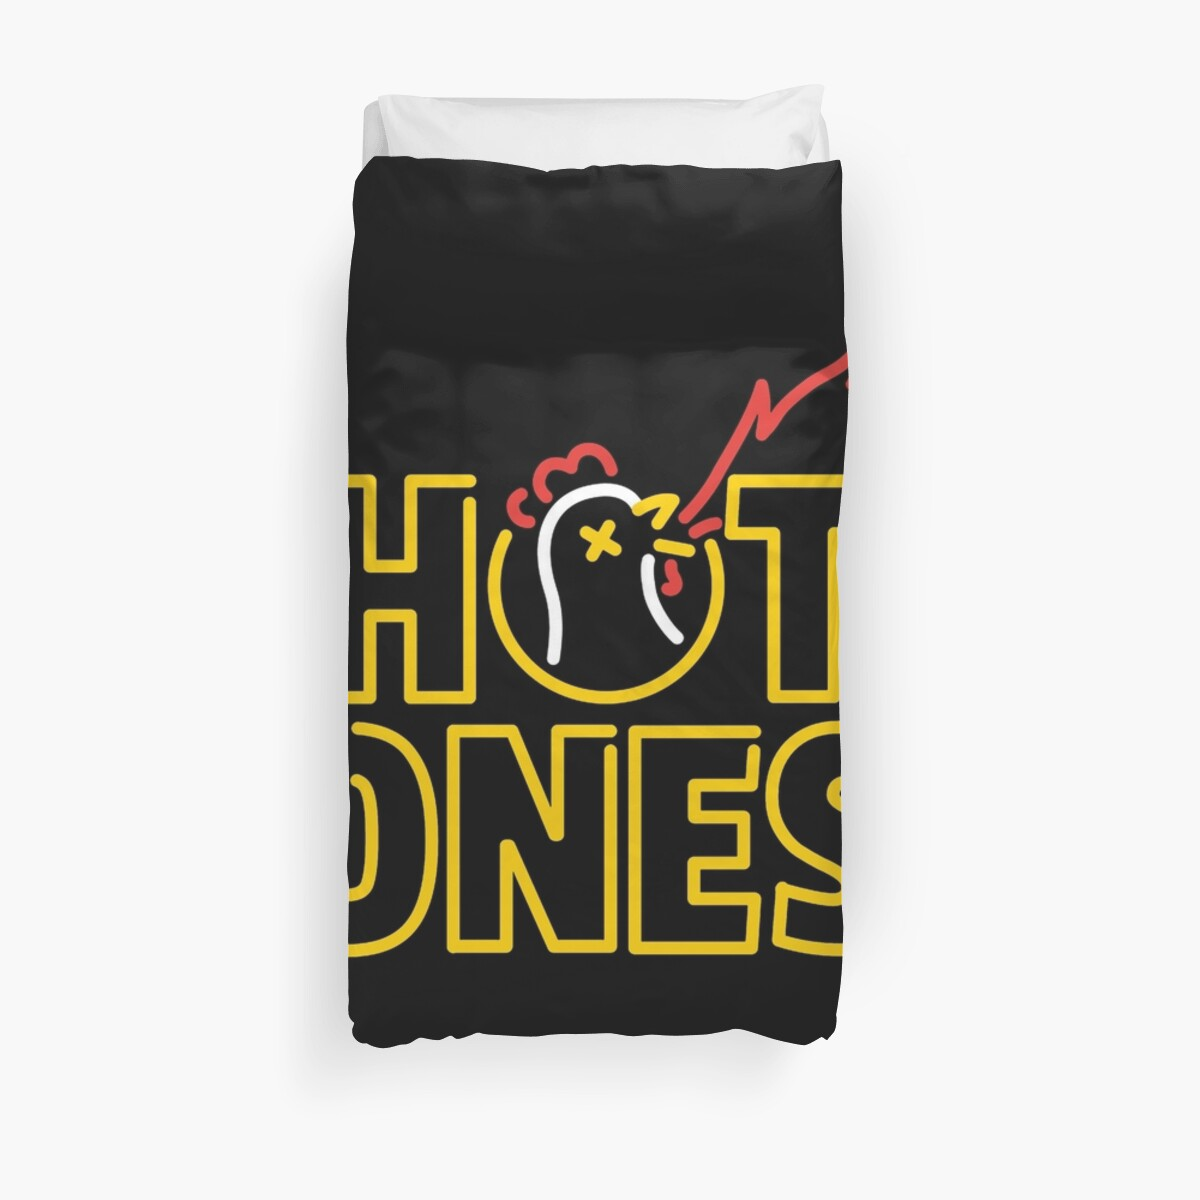 Hot Ones Duvet Cover by Angela Reyes Gomez